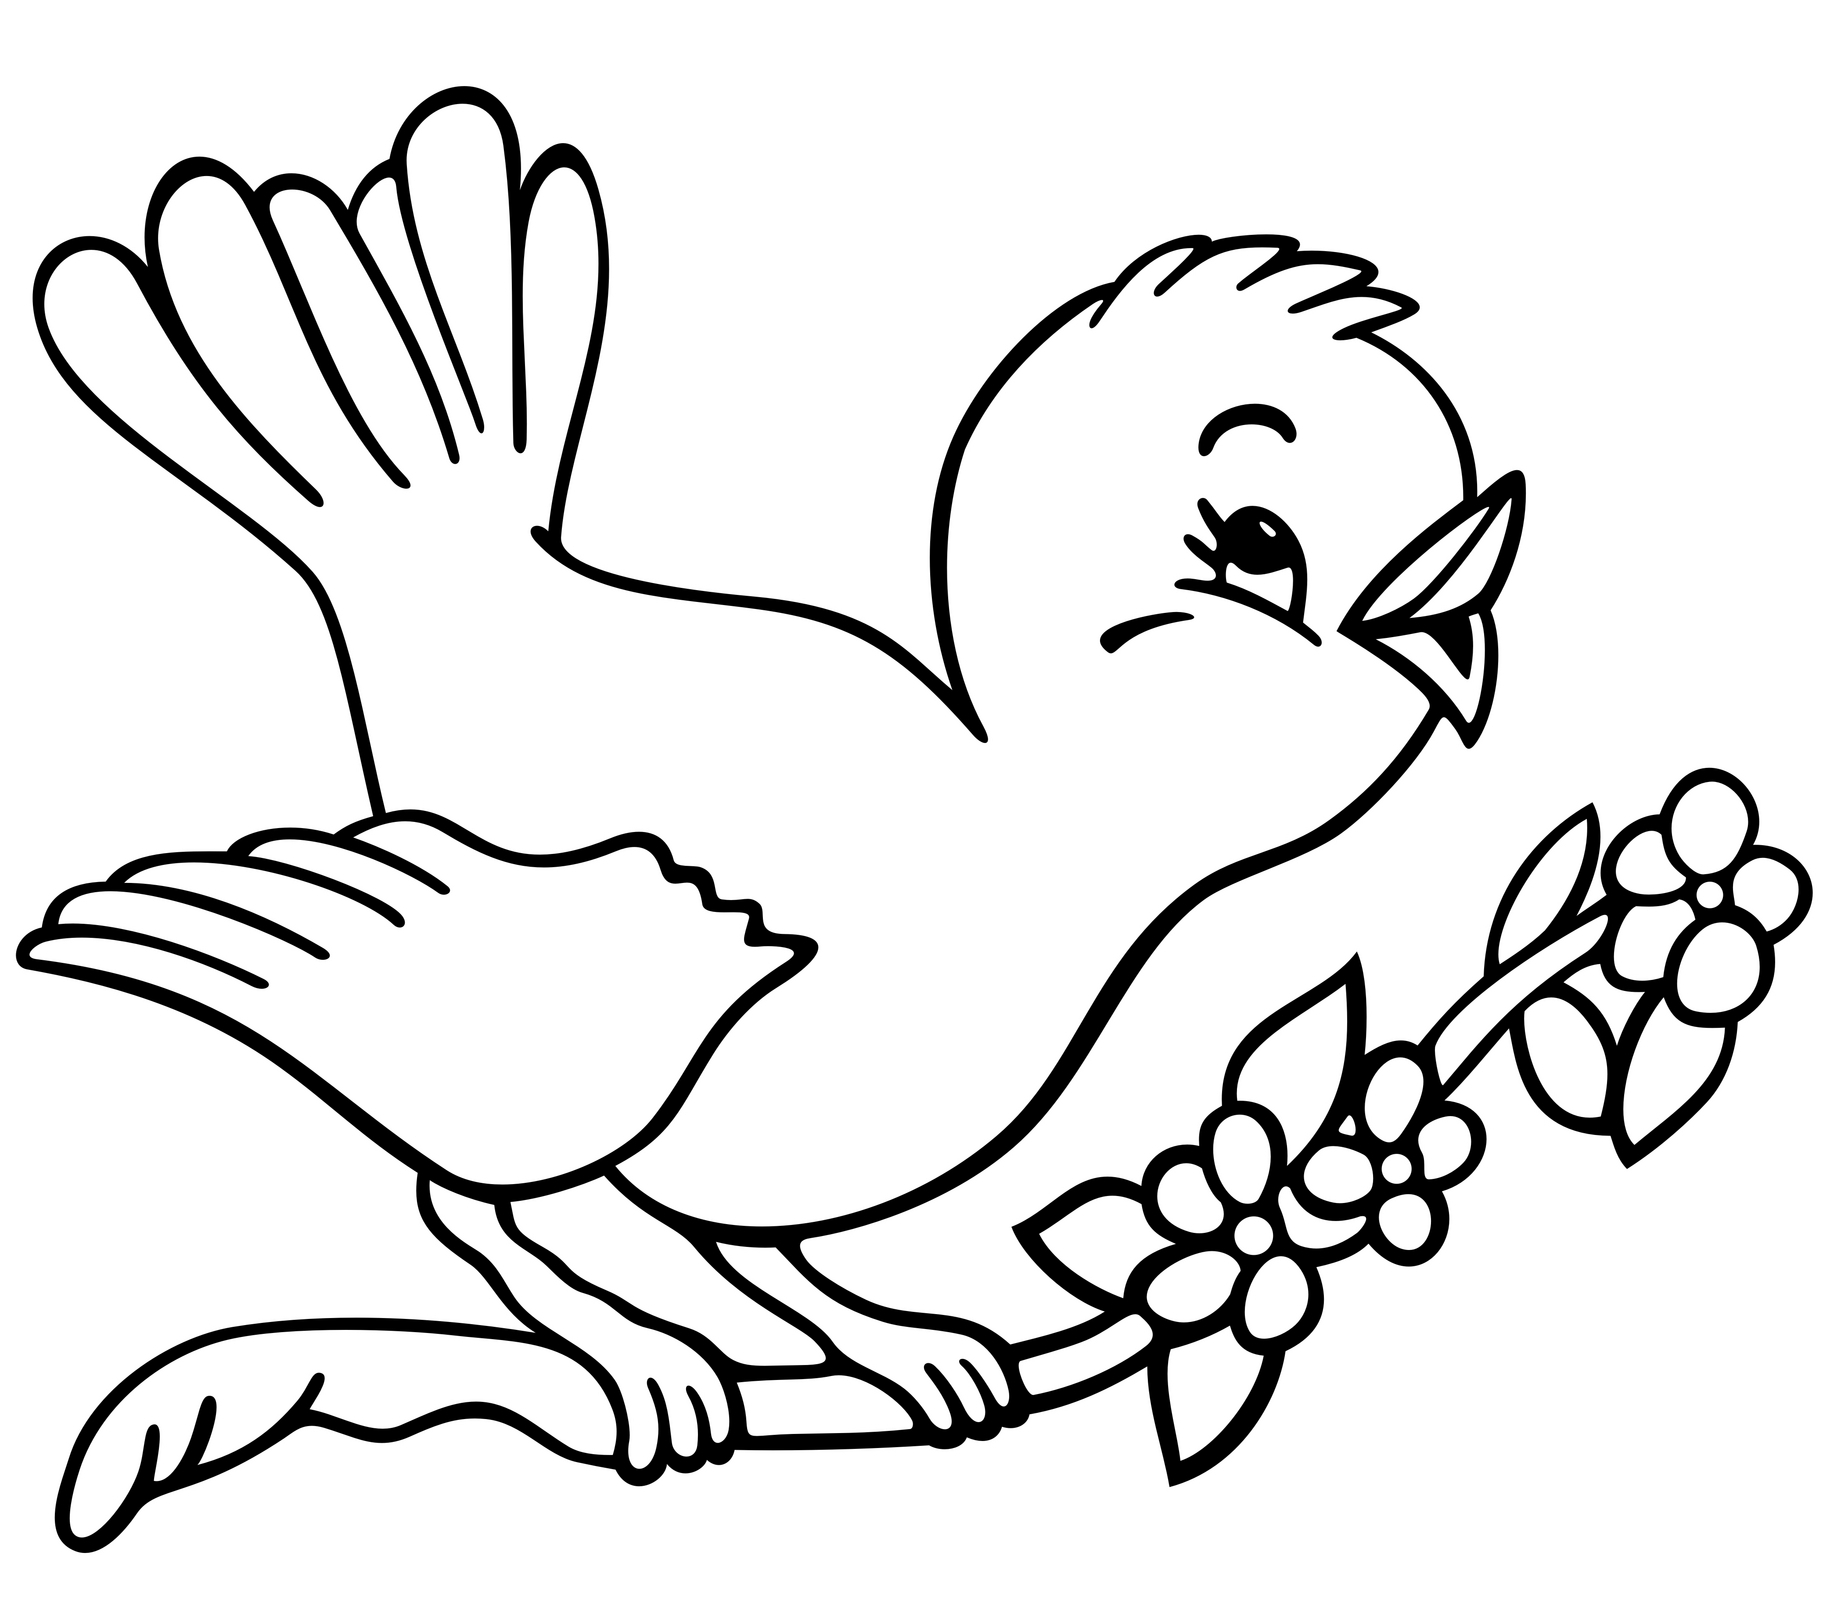 Coloring Pages Birds Collection 15c - Save it to your computer